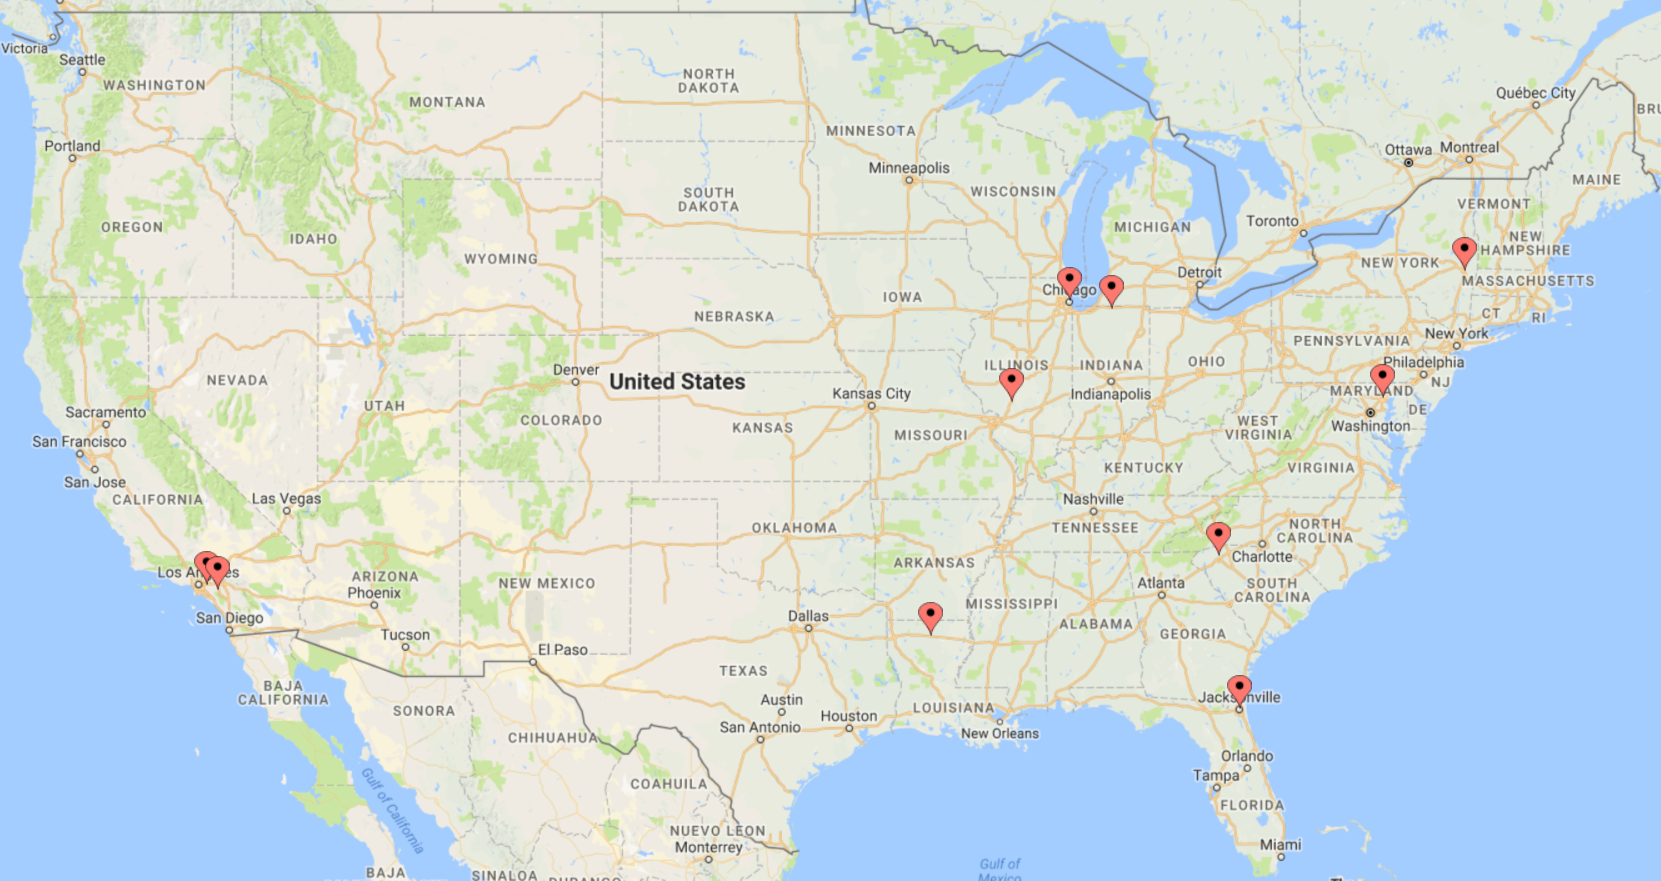 golf-cart-tire-supply-warehouse-locations-2018-01.png